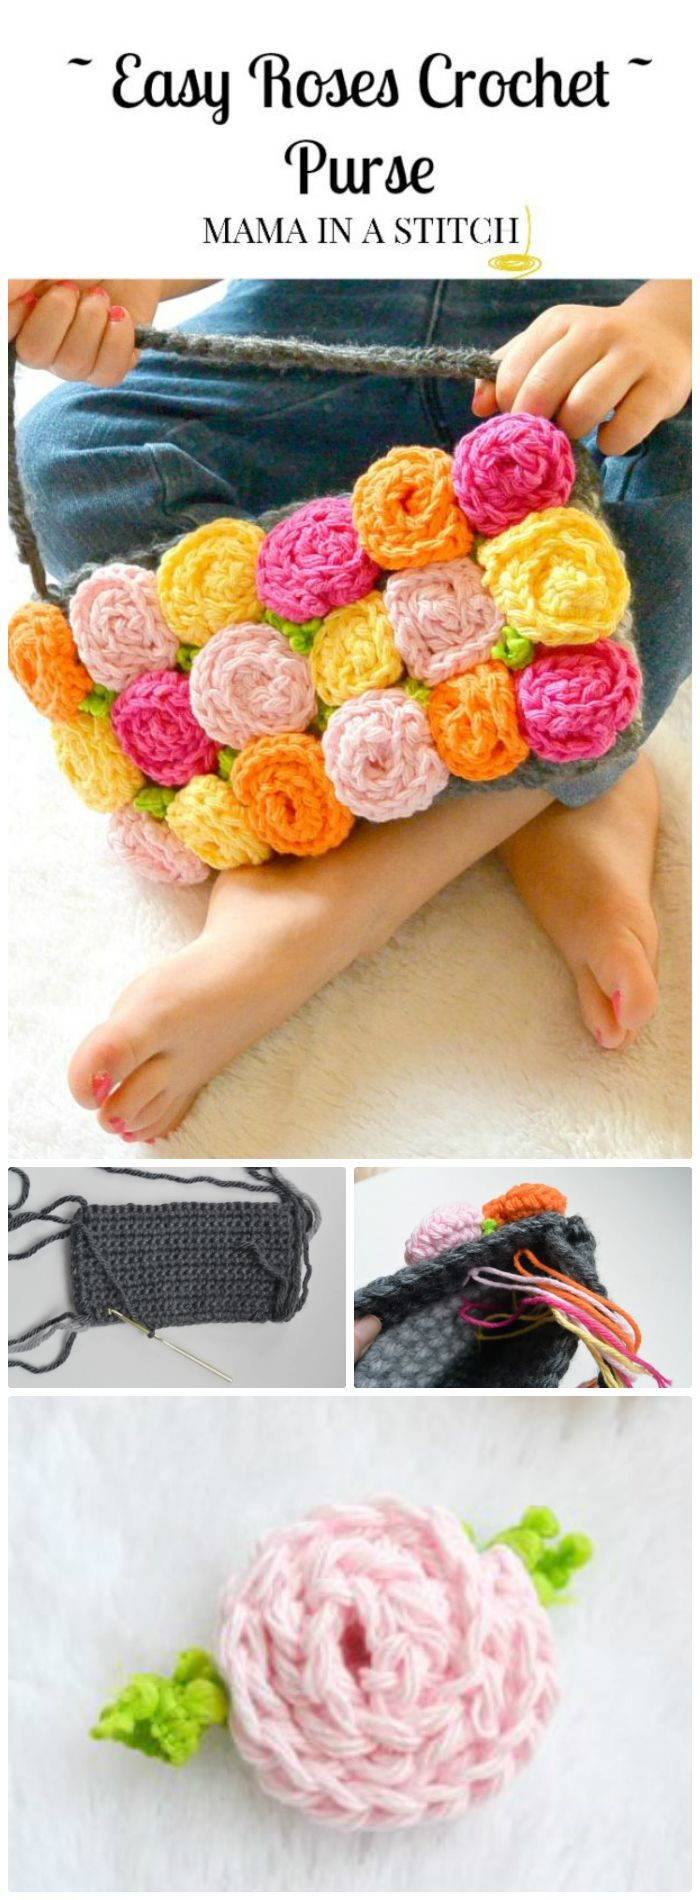 DIY Roses Crochet Purse - crochet flower pattern free | crochet flower pattern | crochet flower pattern free easy